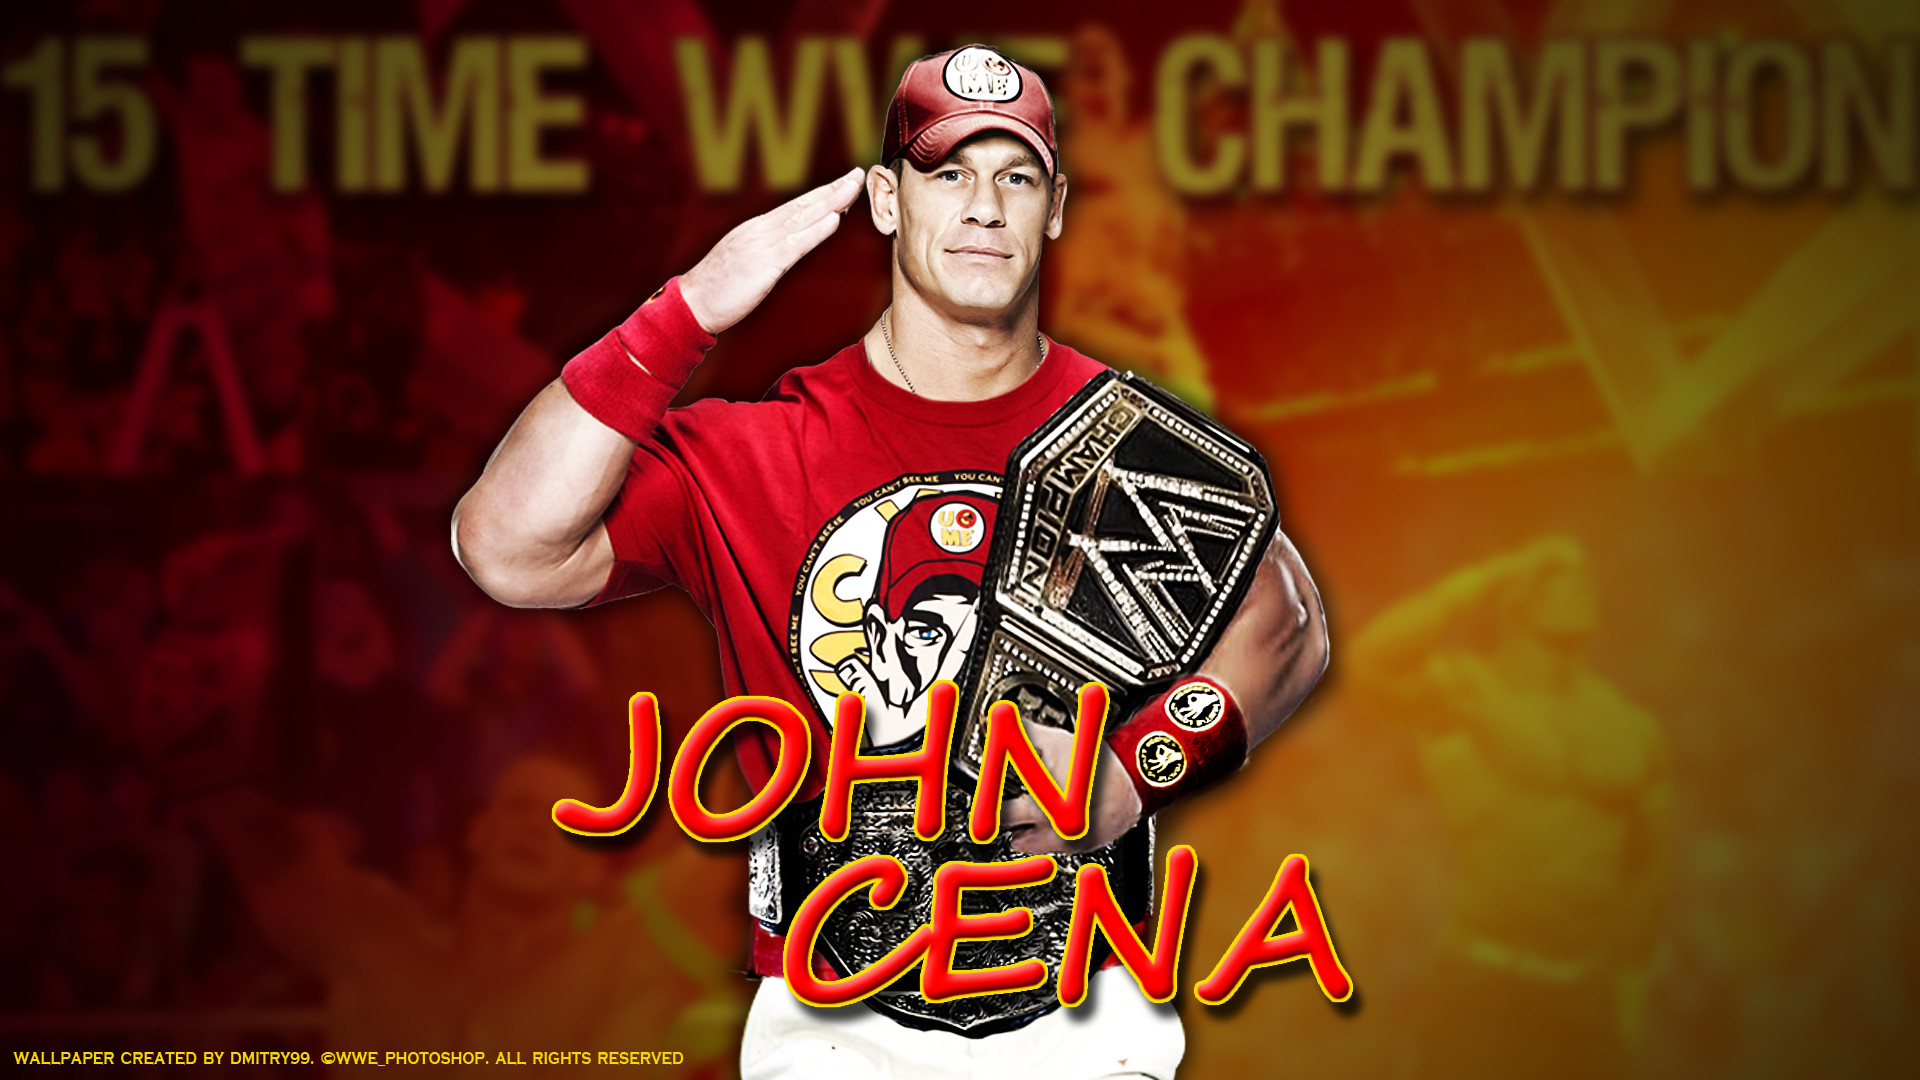 1920x1080 John Cena Wallpapers HD Wallpaper